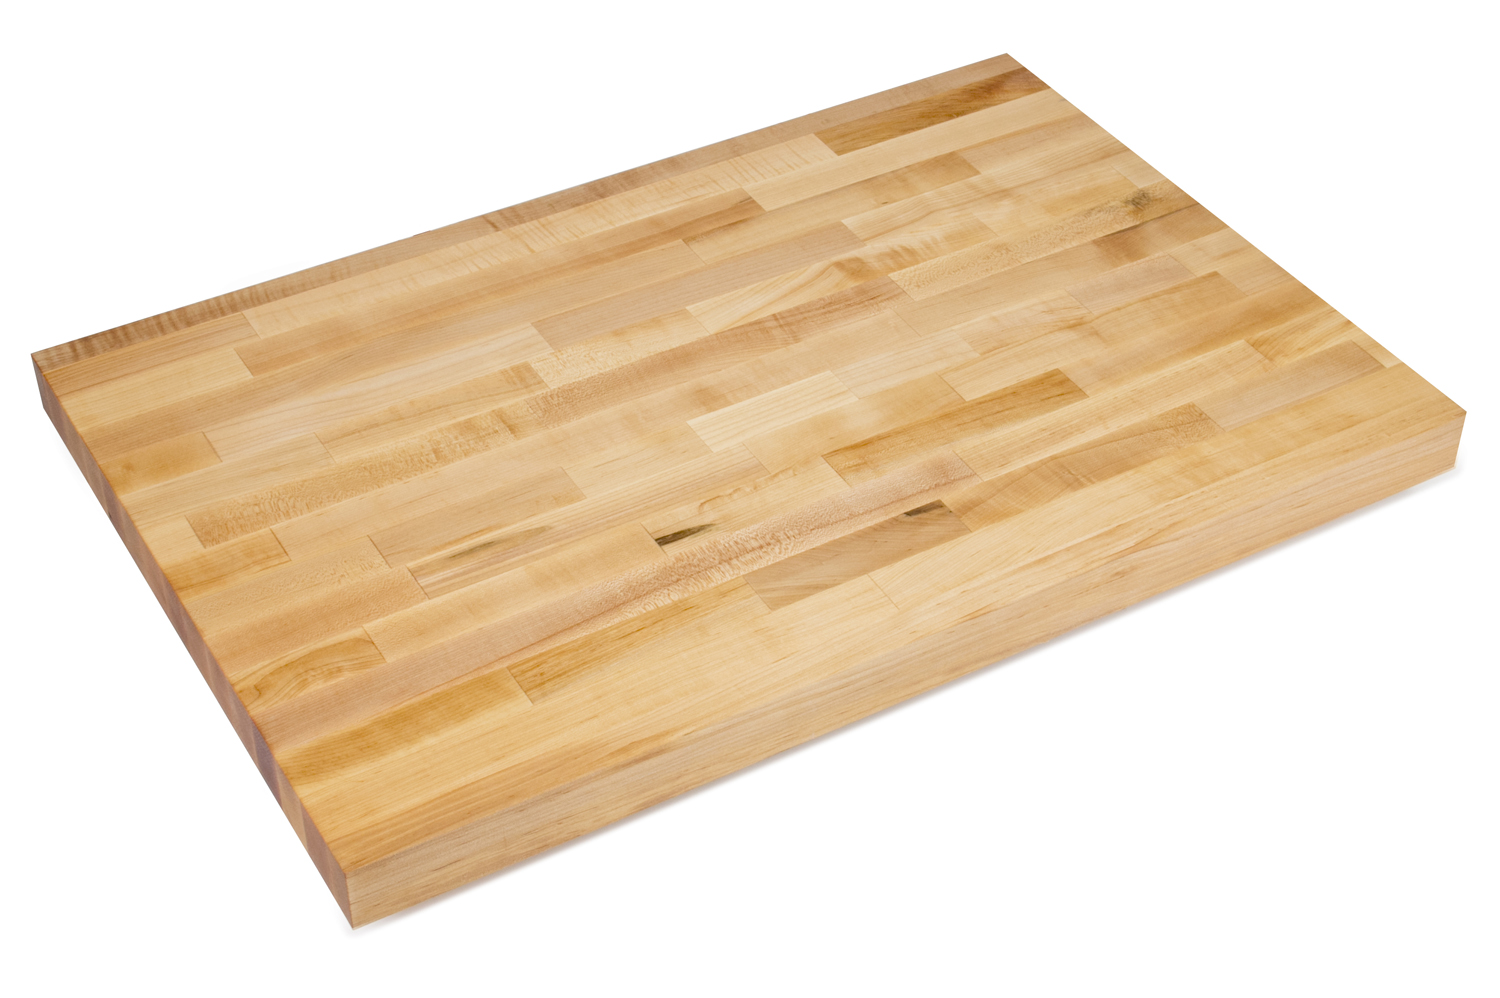 2.25 inch thick restaurant grade butcher block countertops